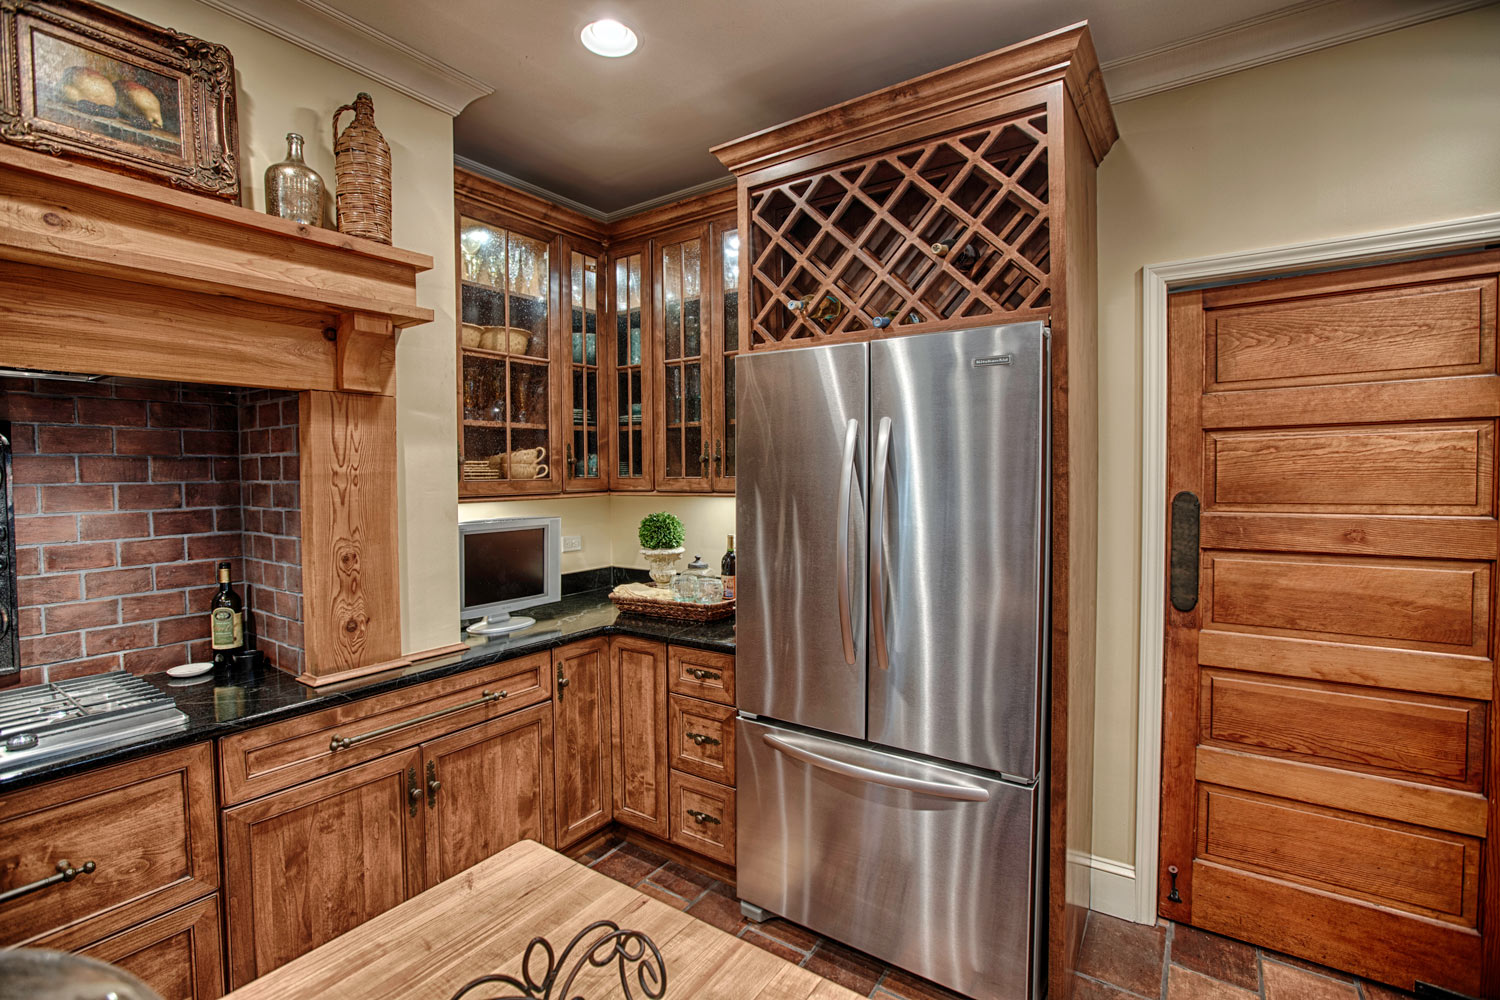 Appliances are by Kitchenaid